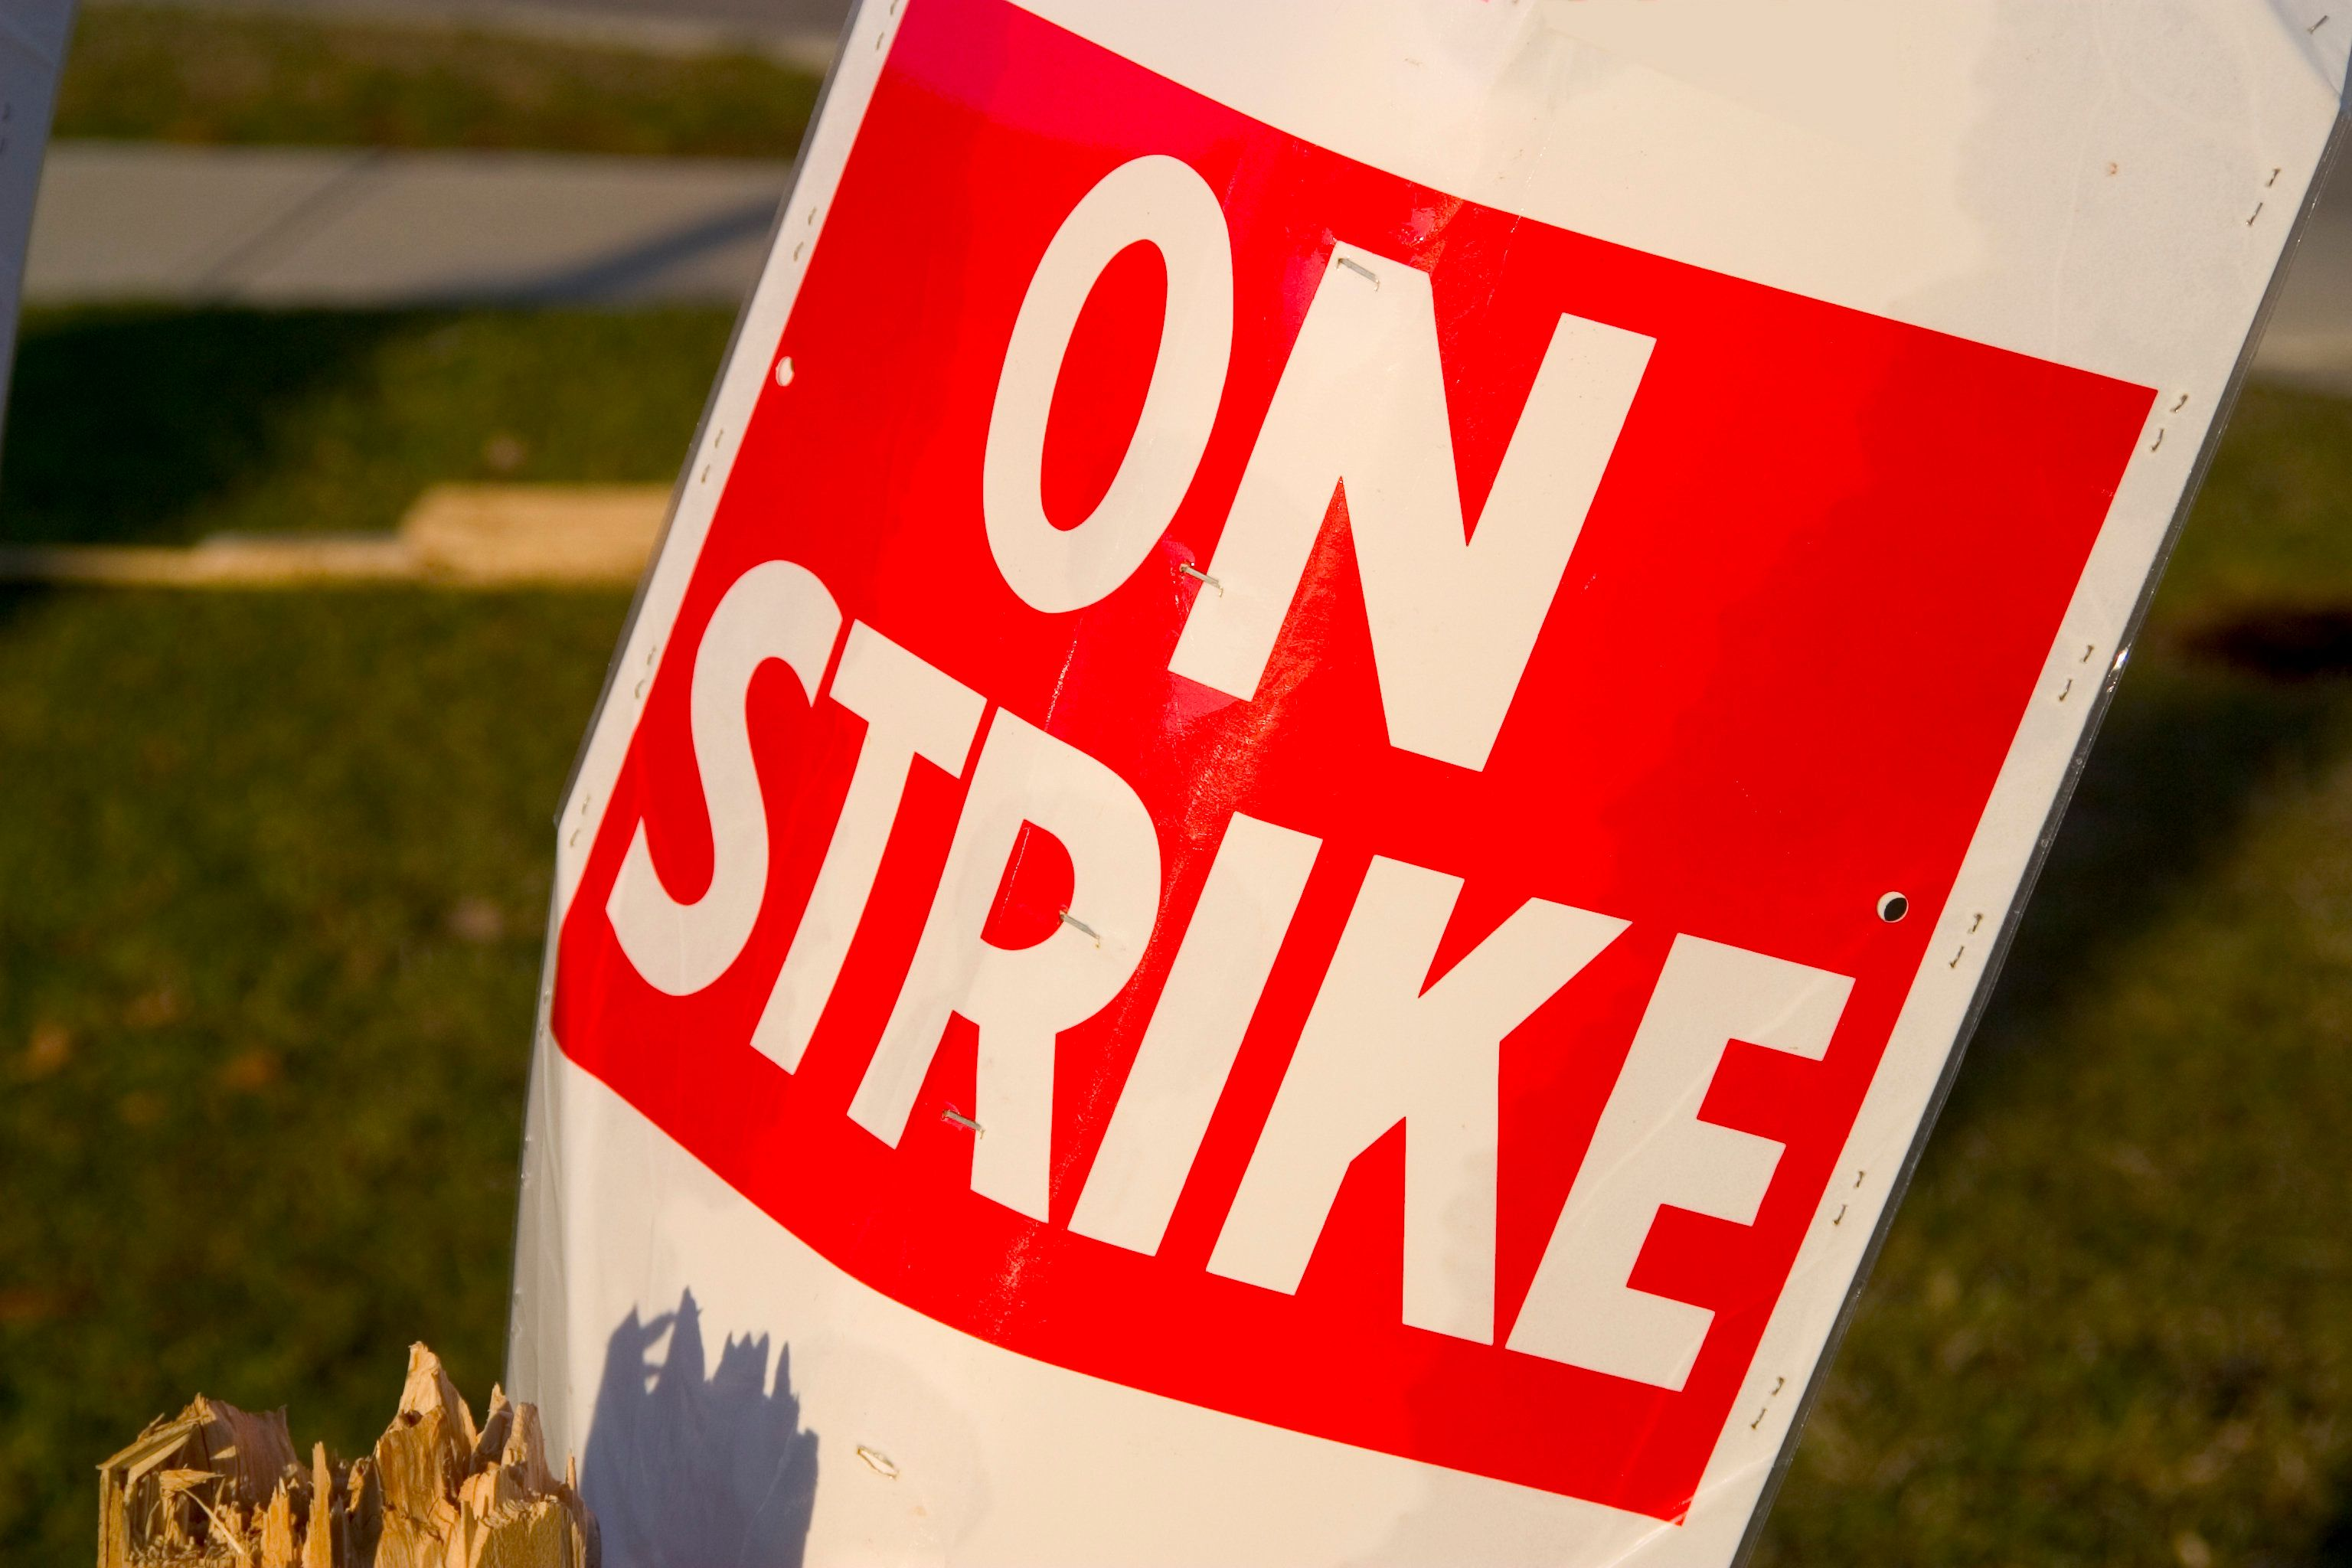 On Strike placard sits in garbage pail post strike. Narrow depth with soft background. Shot in sun setting light.